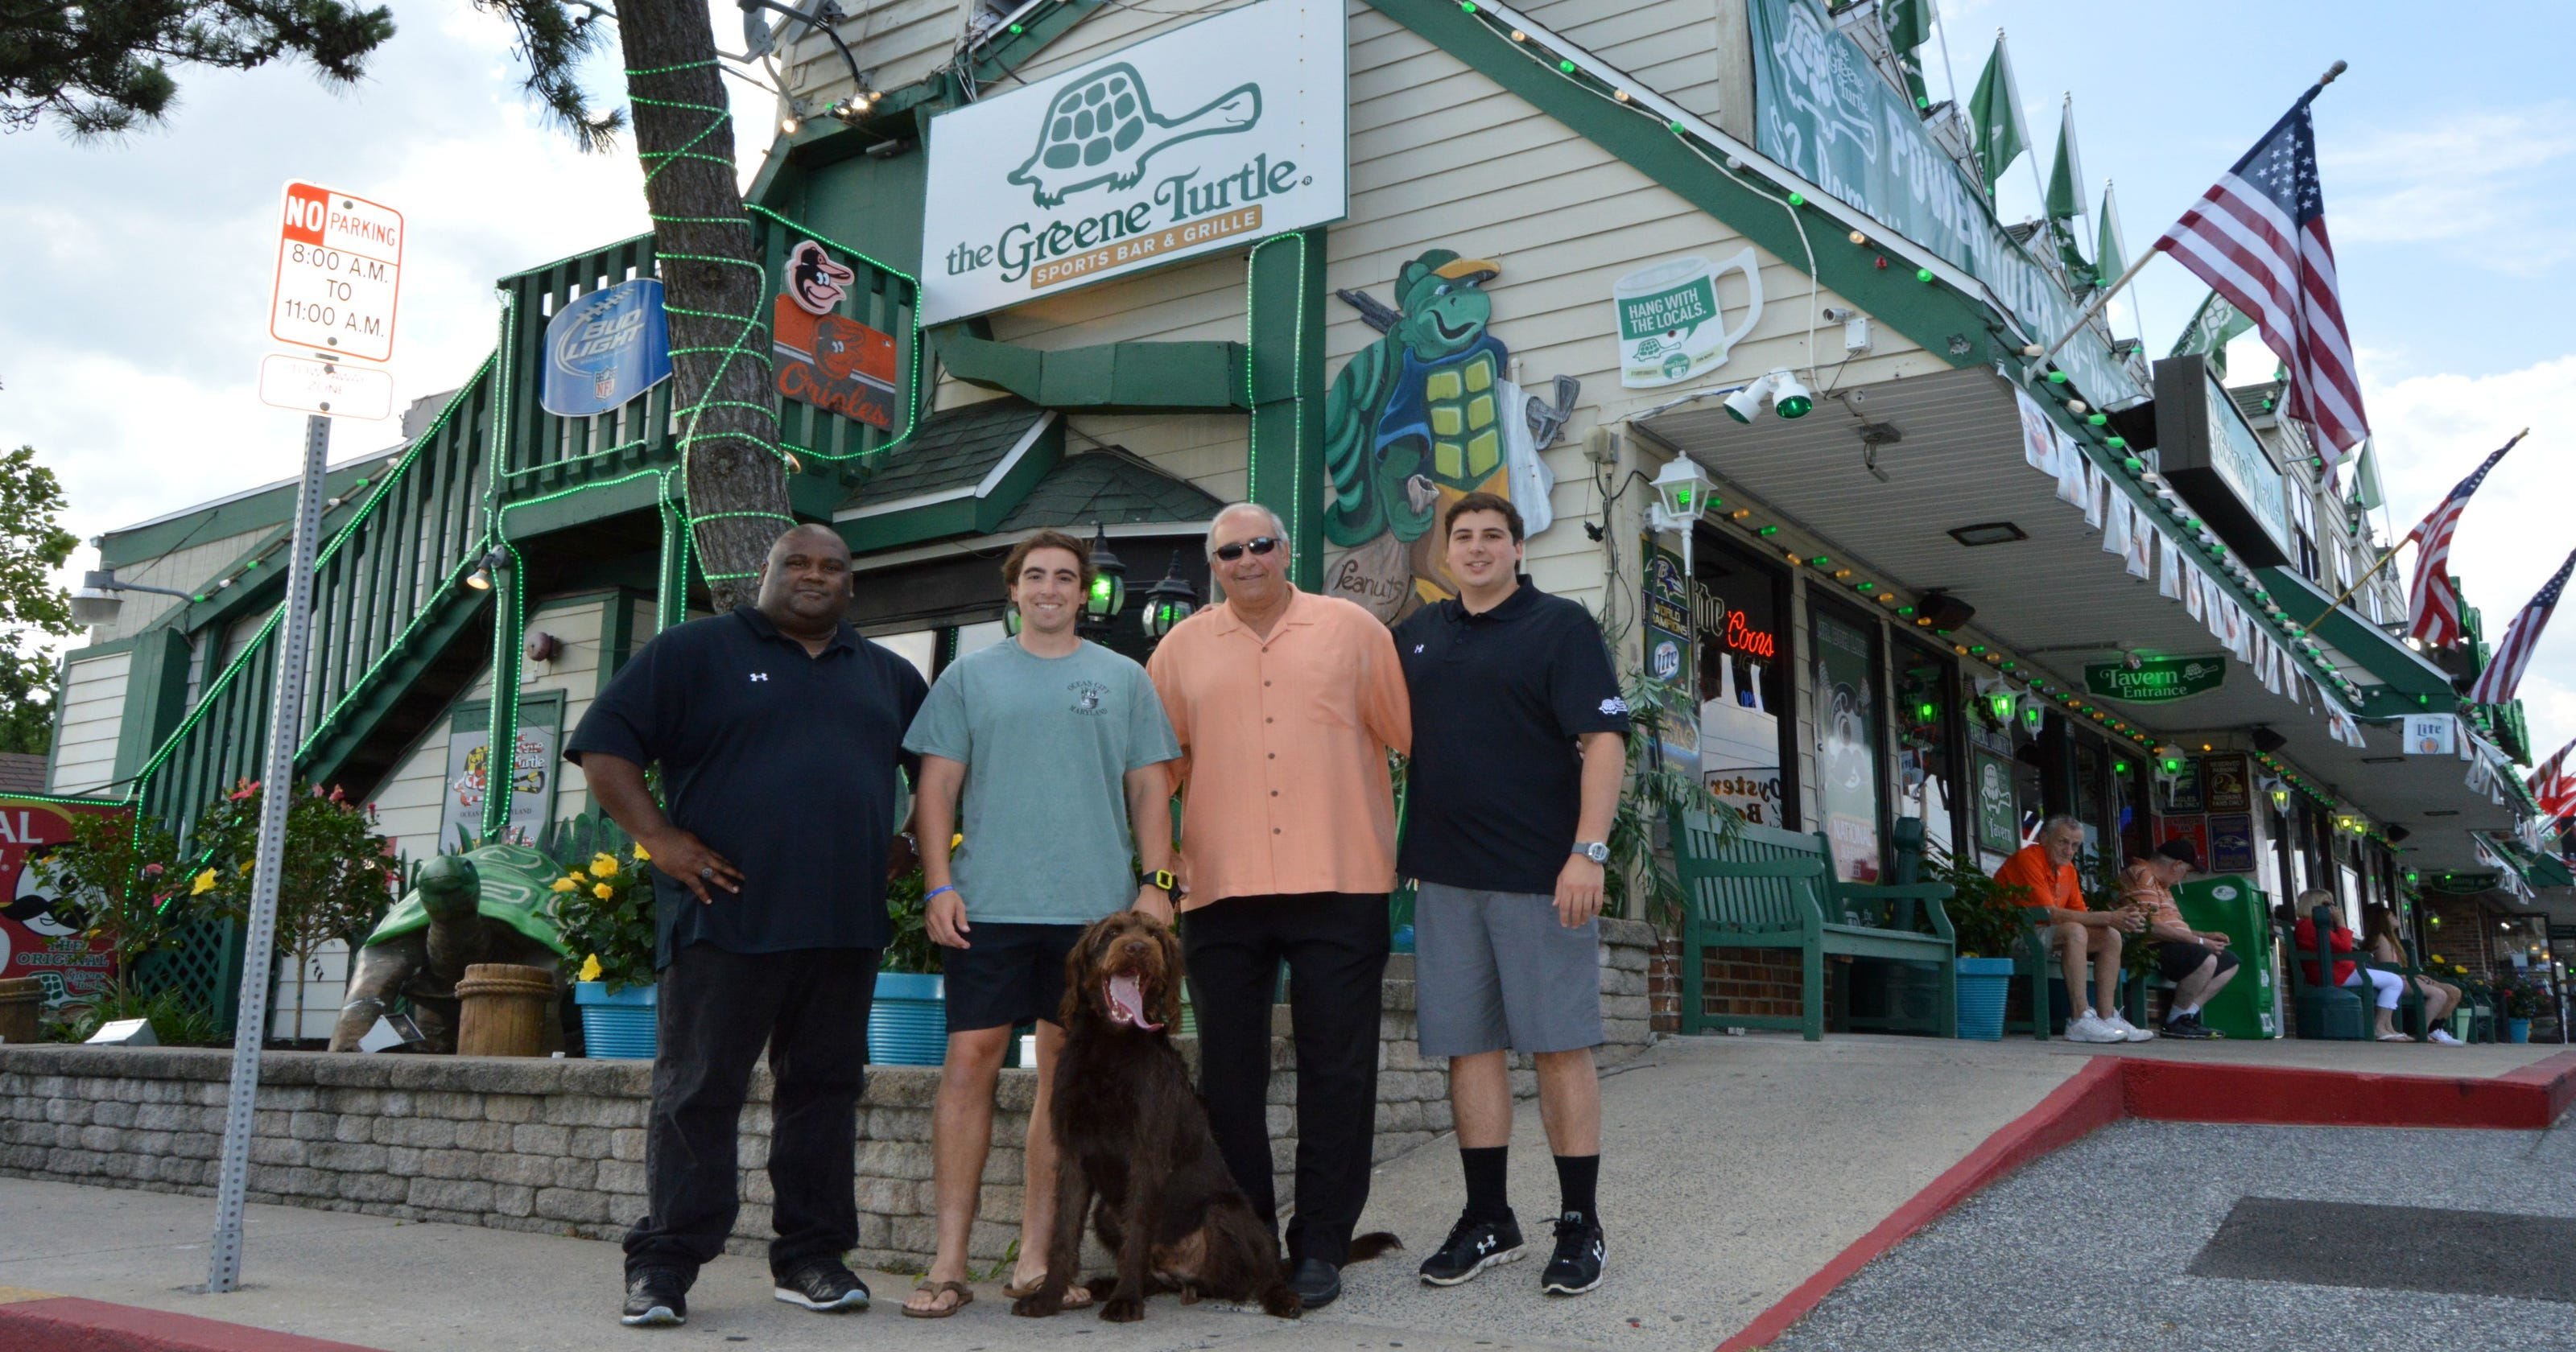 Owners marvel at 40 years of Greene Turtle power